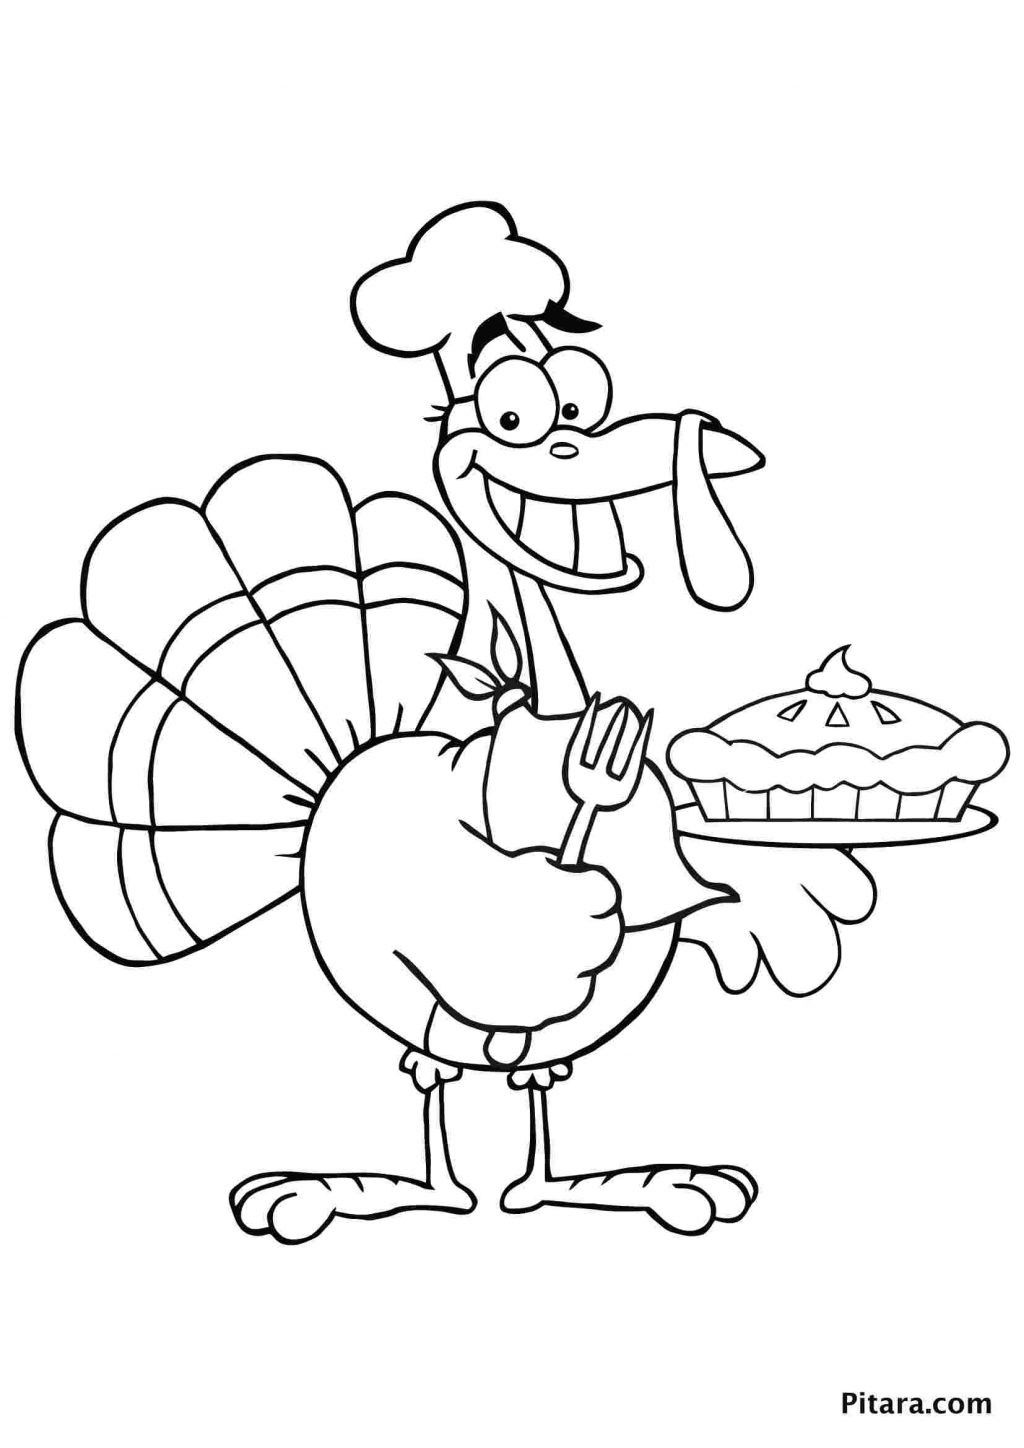 Large Turkey Coloring Page in 2020